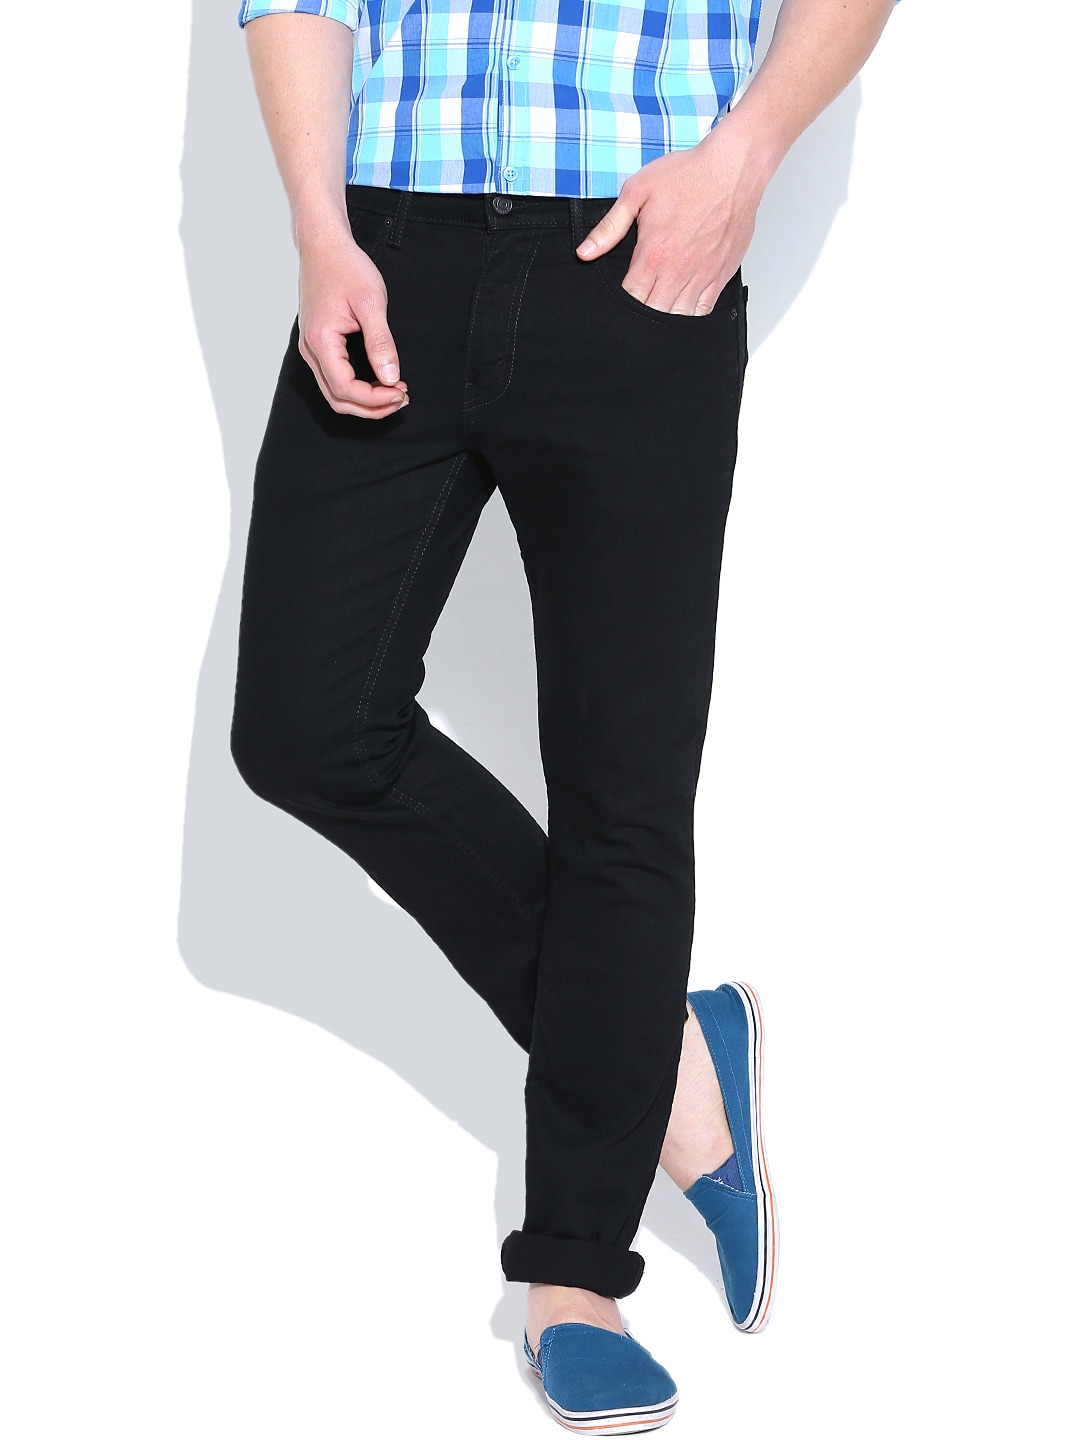 Levis Black Skinny Straight Fit Jeans 65504